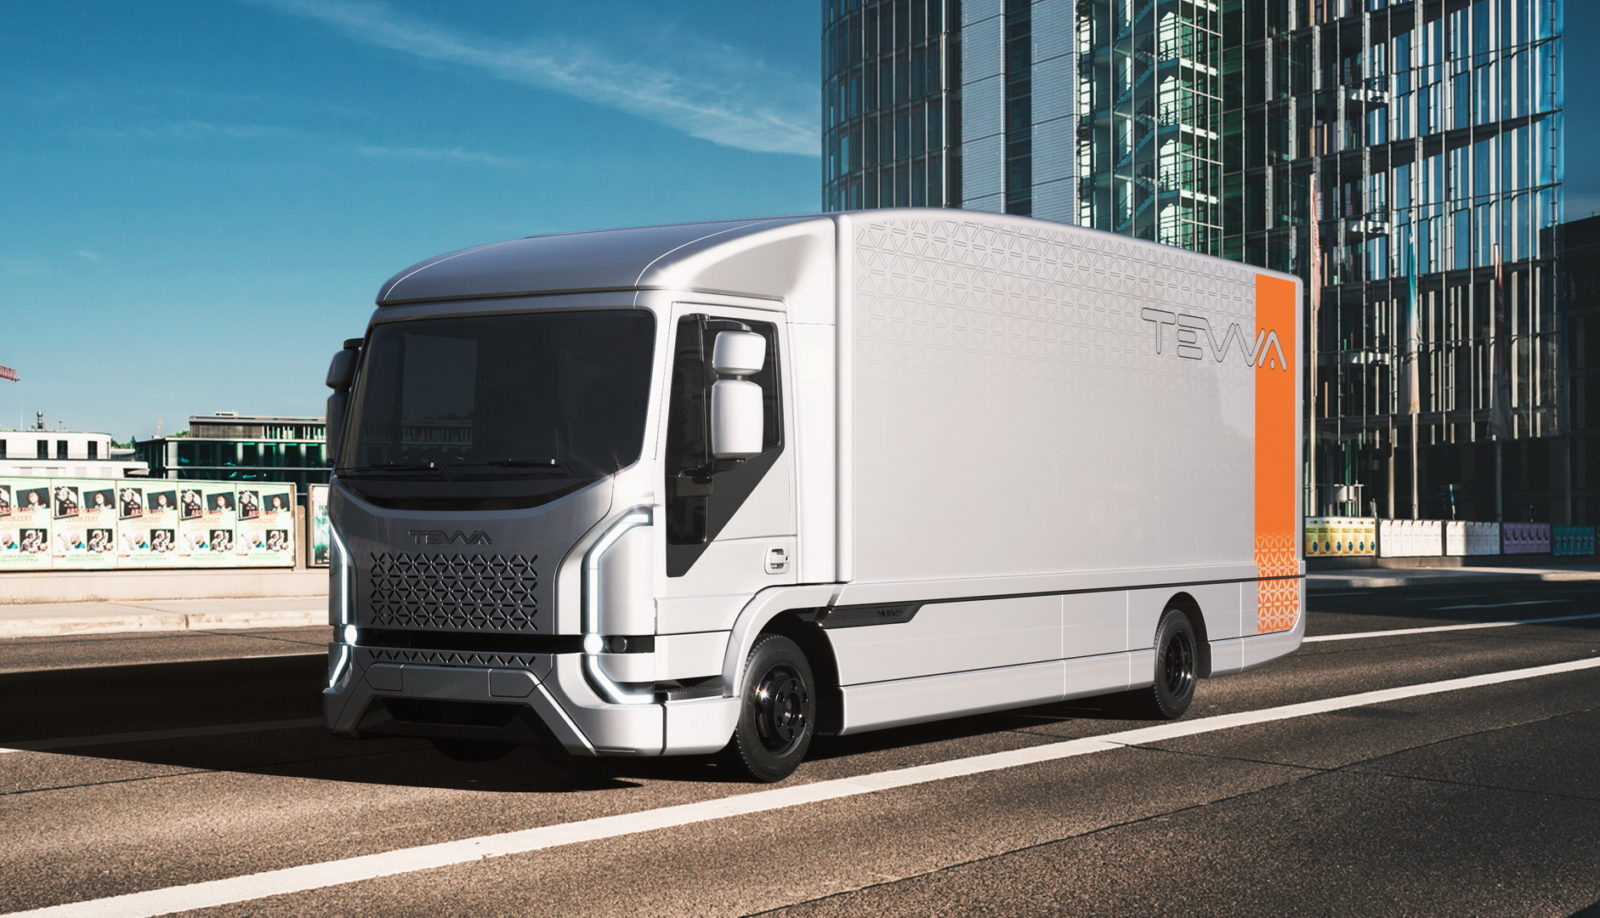 tevva-unveils-new-all-electric-7.5-ton-truck-with-up-to-310-miles-of-range